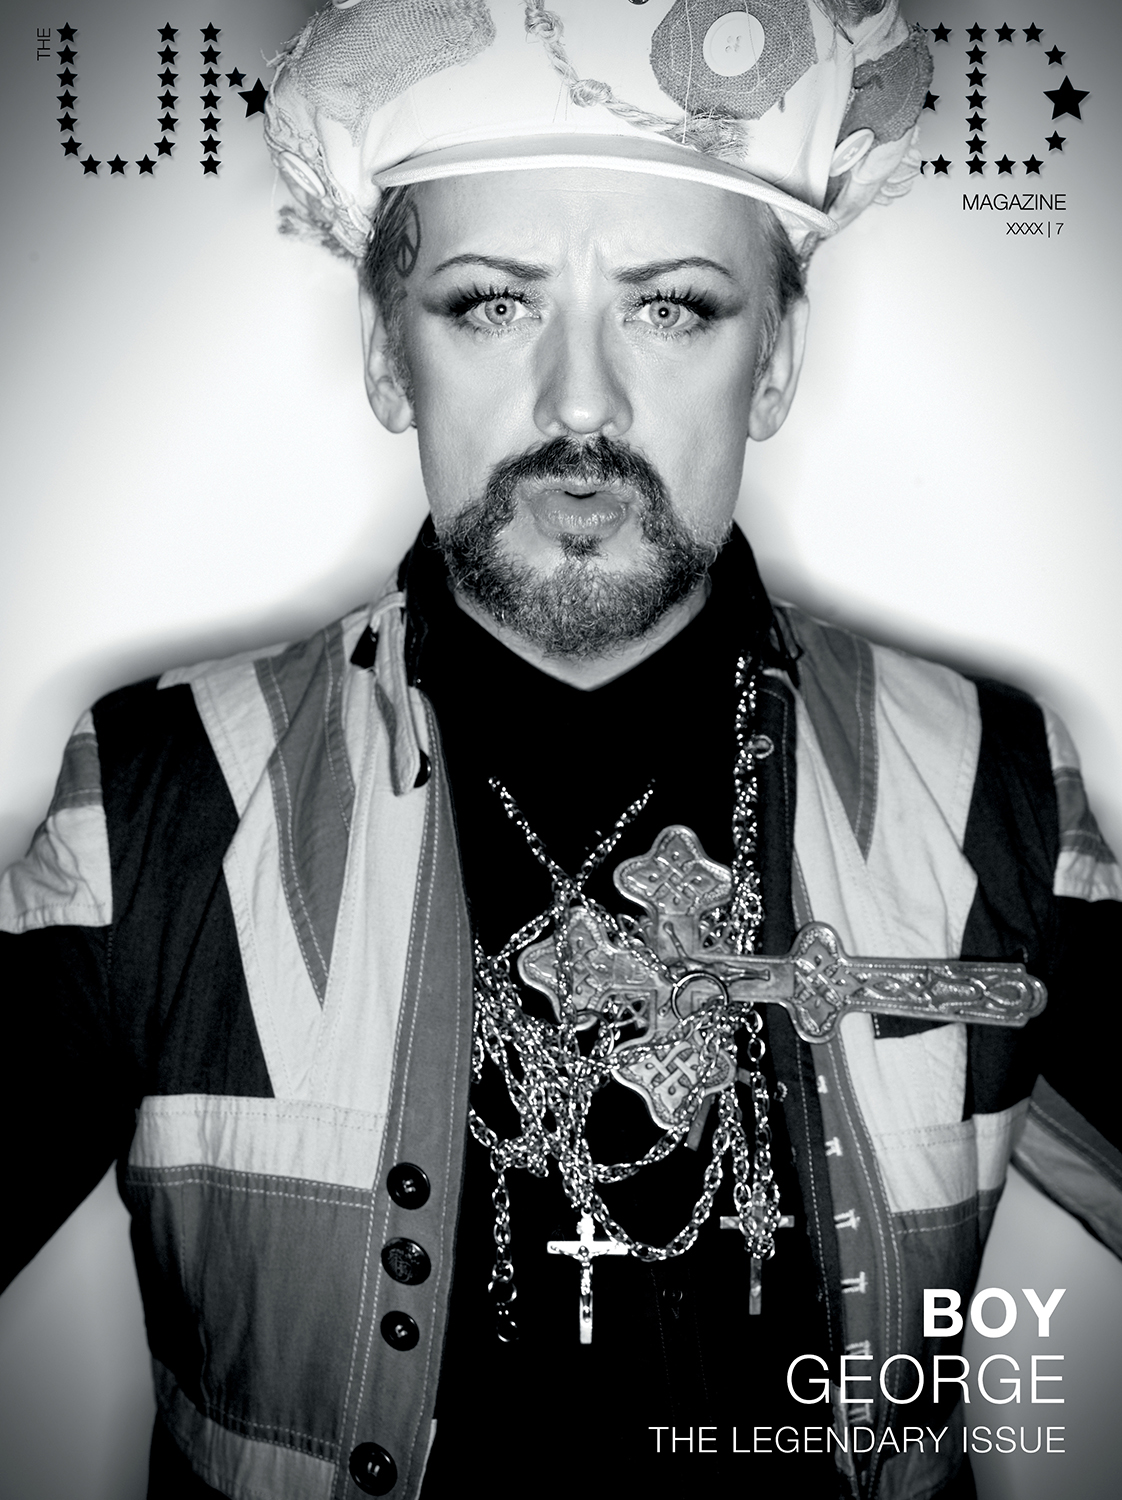 The-Untitled-Magazine-Legendary-Issue-7-low-res-Boy-George.jpg